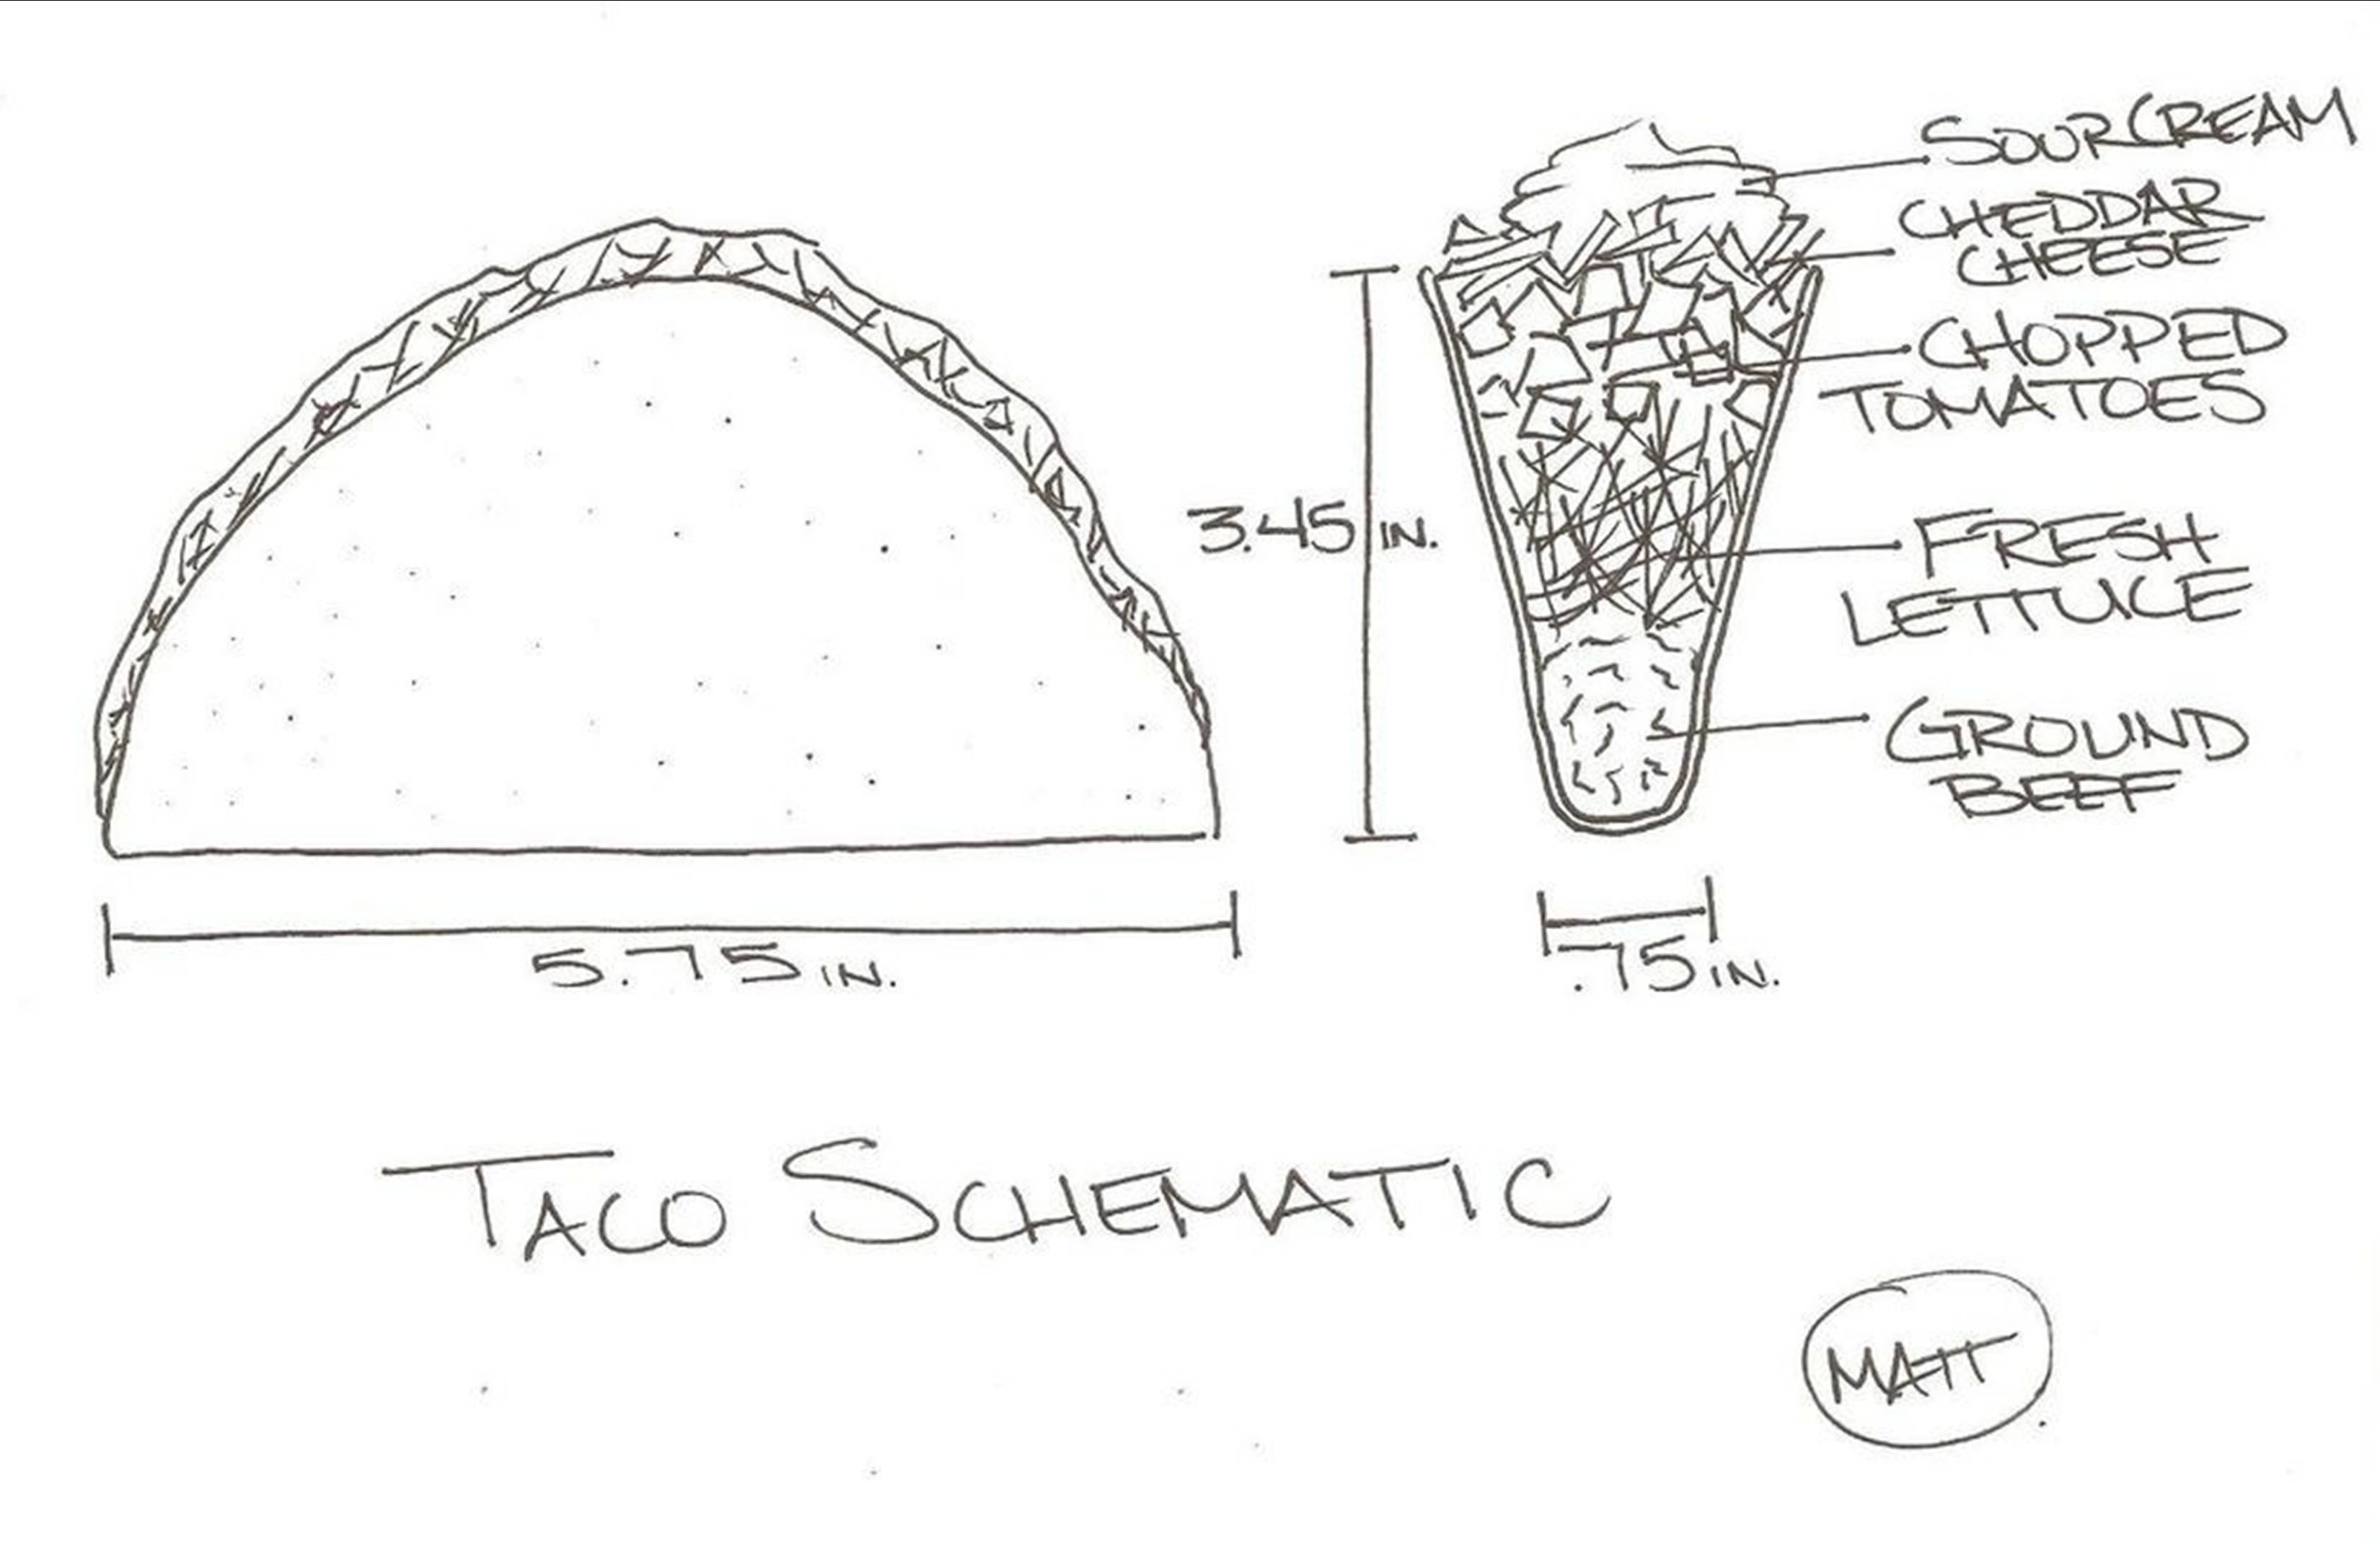 taco schematic diagrams   23 wiring diagram images